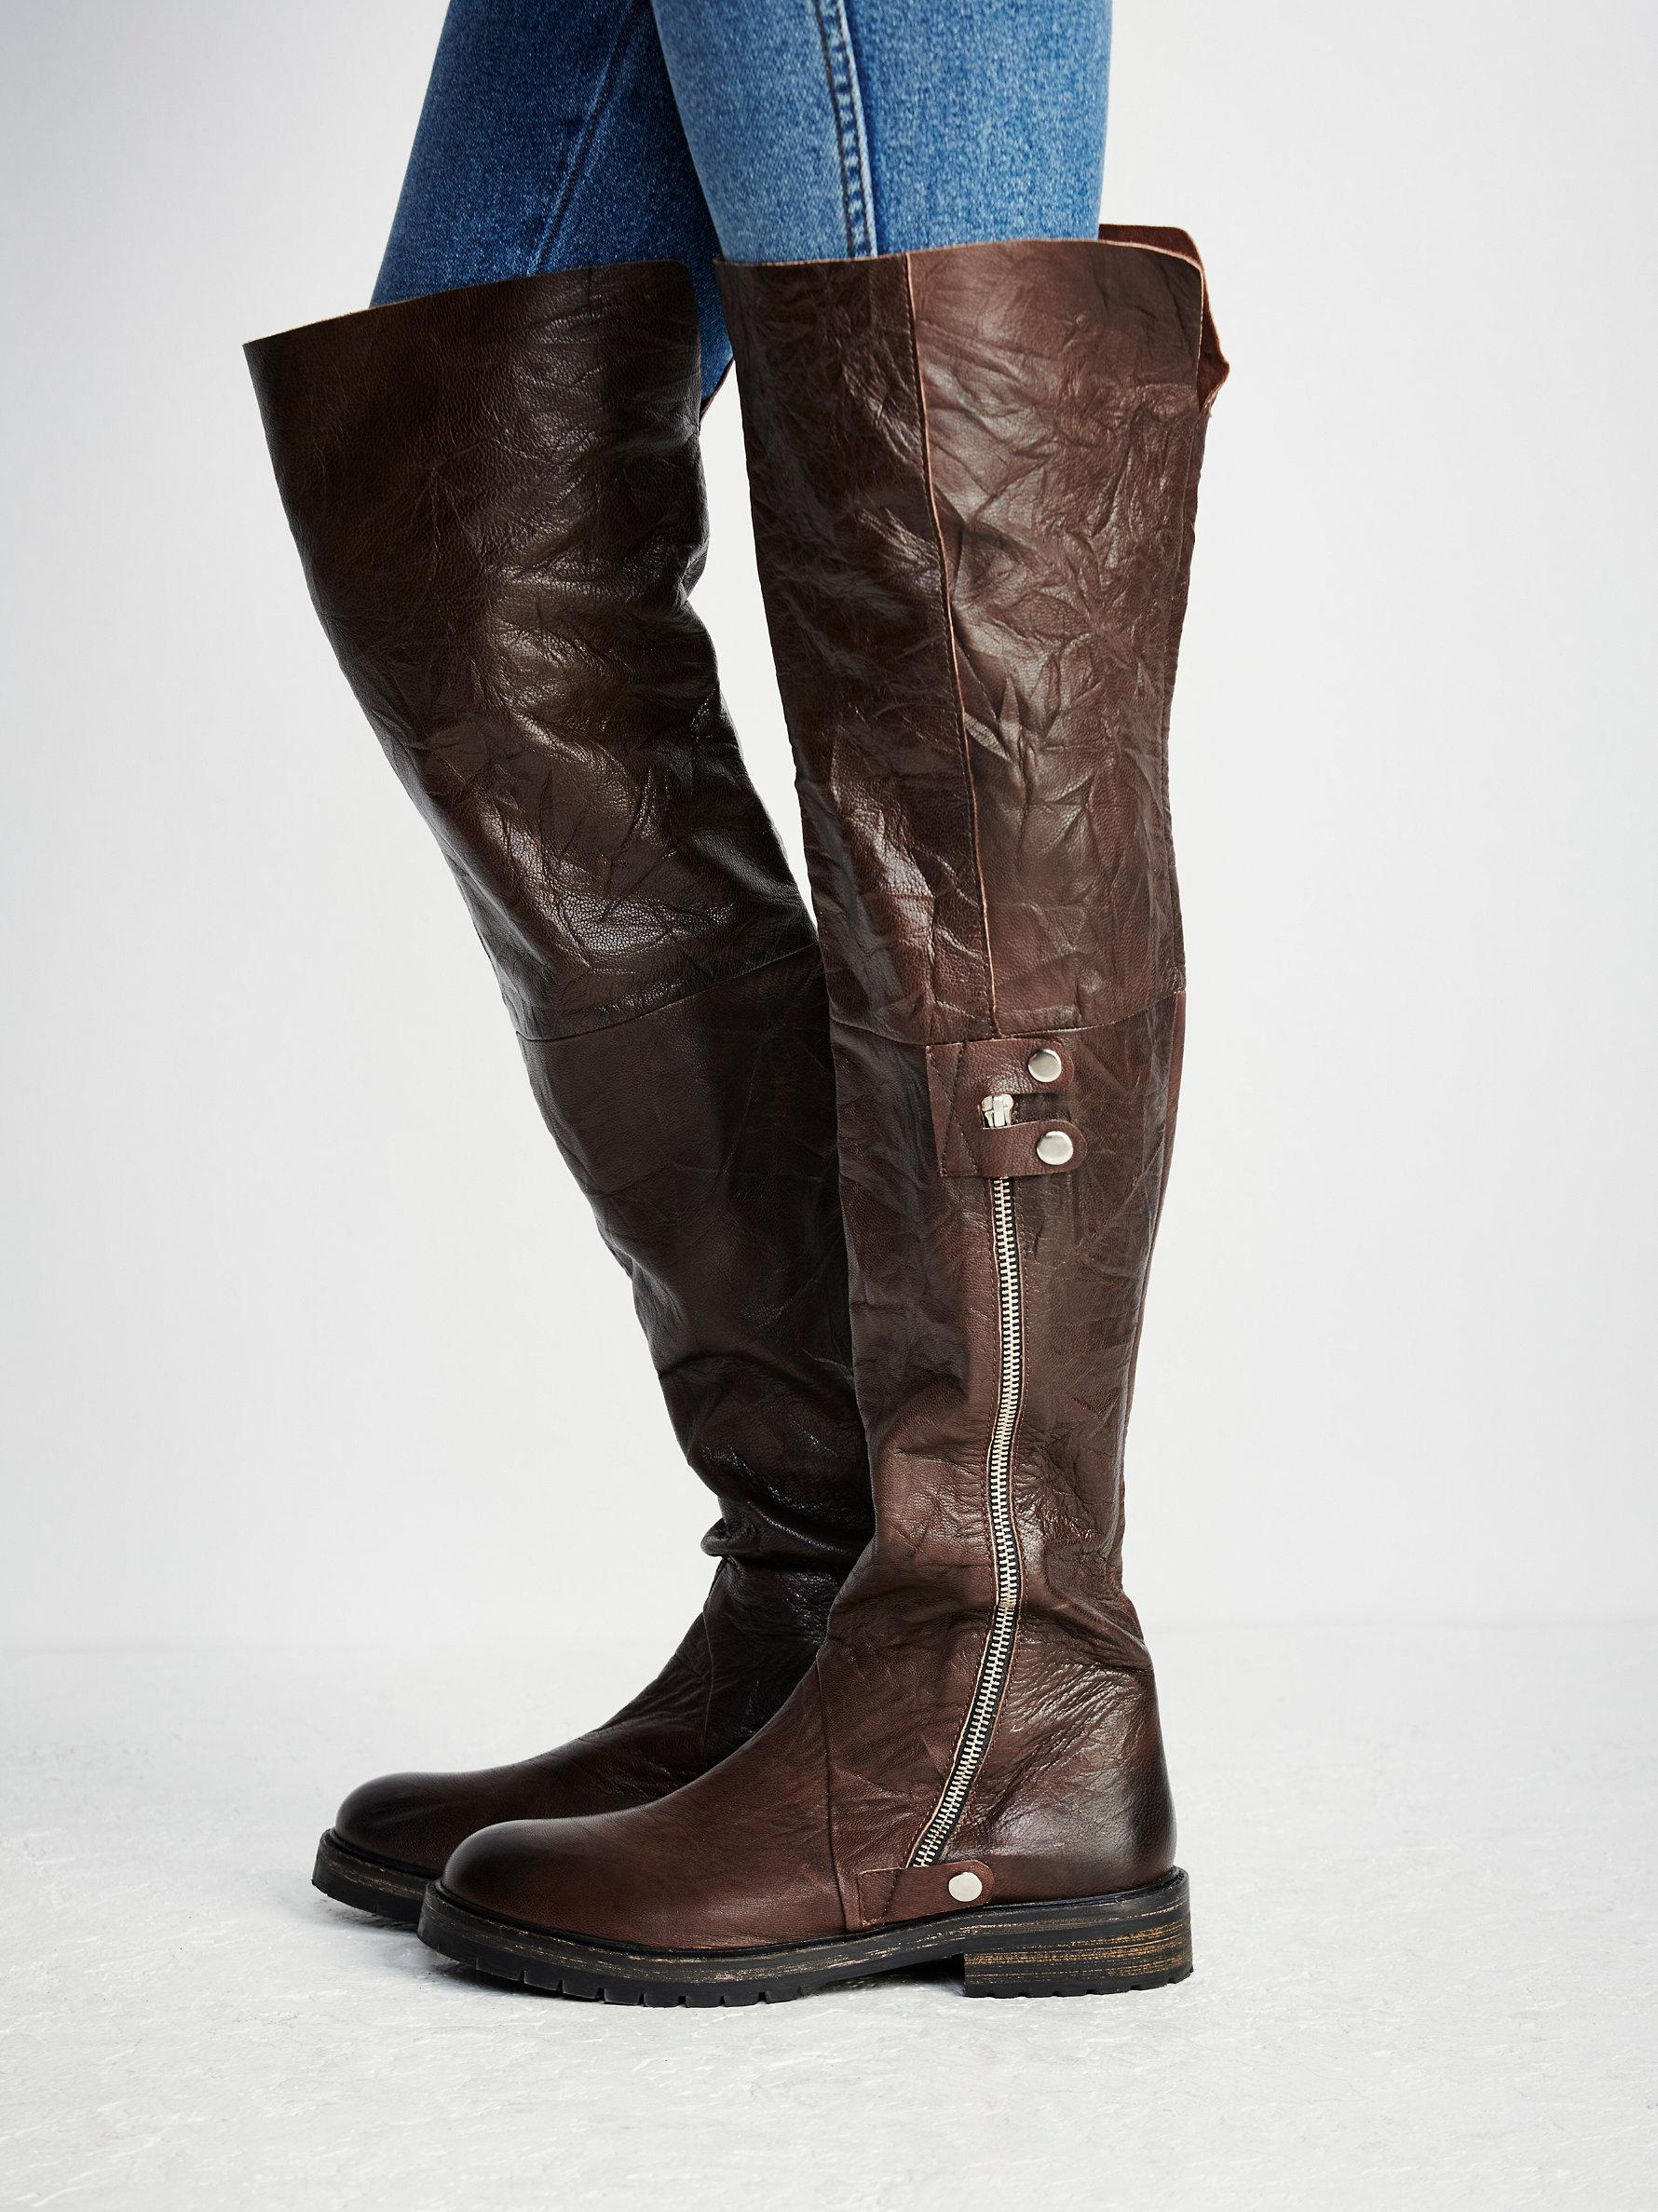 Everly Tall Boot Free People 6tJ22